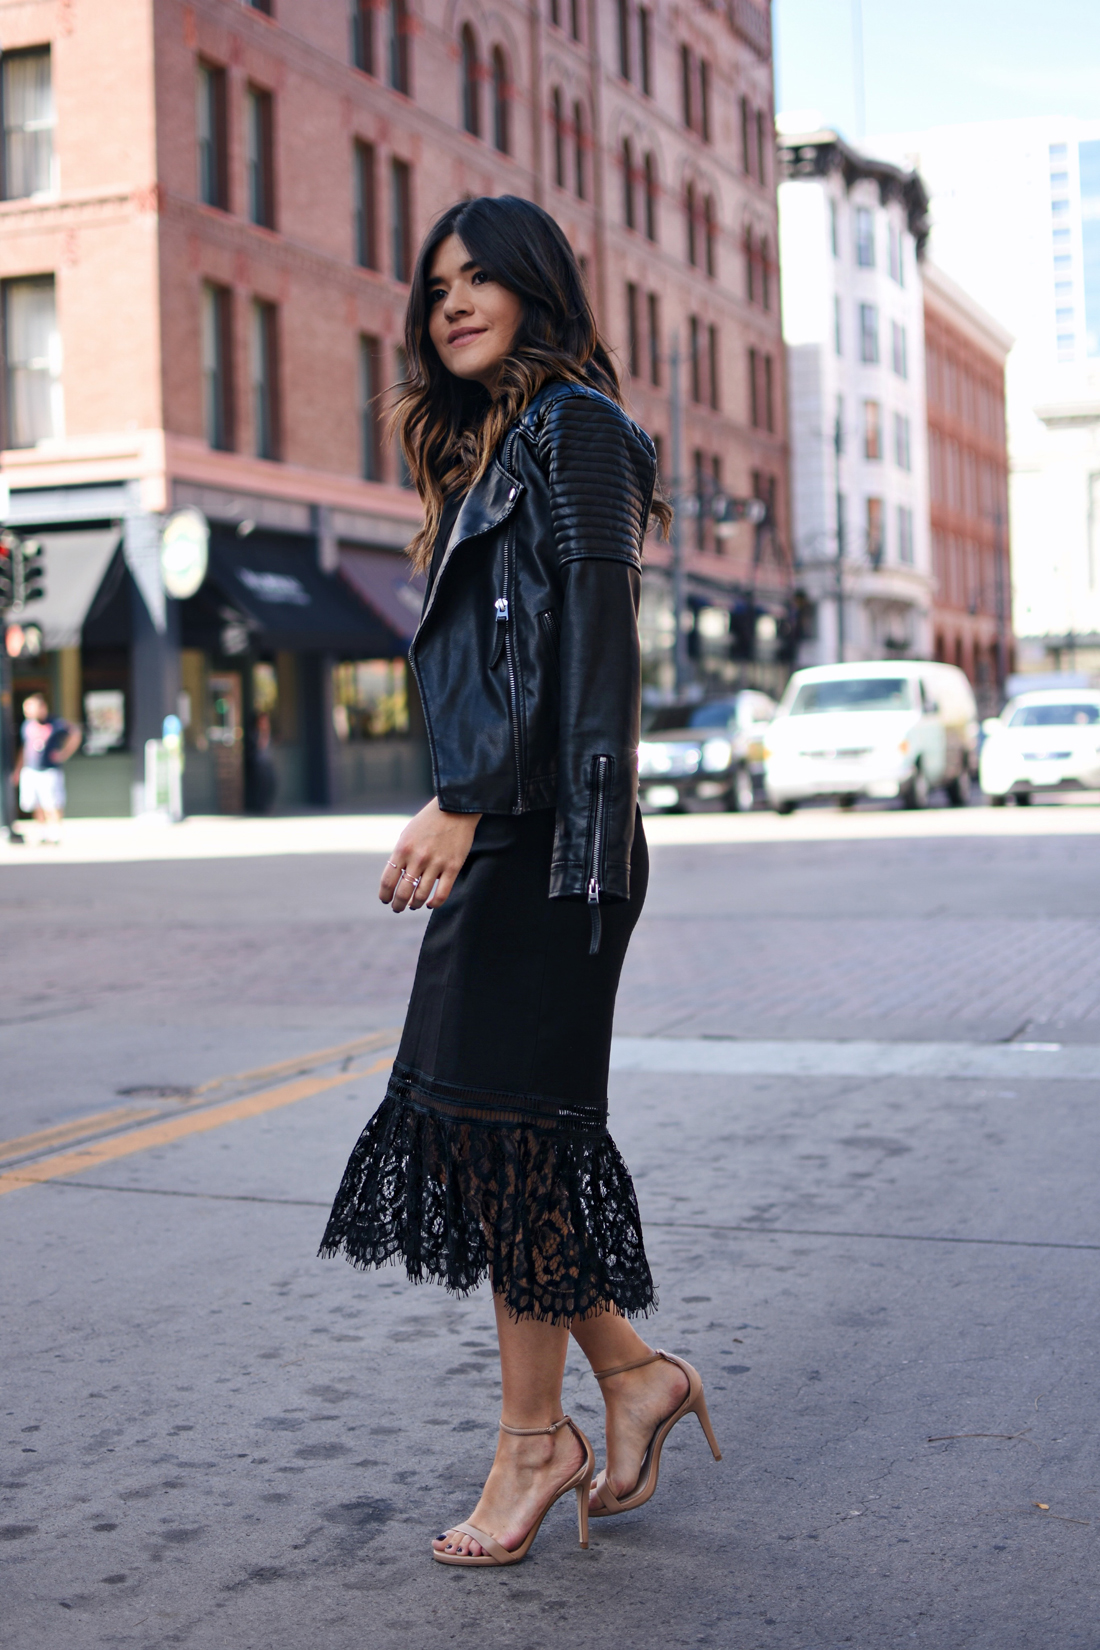 Black chic leather looks